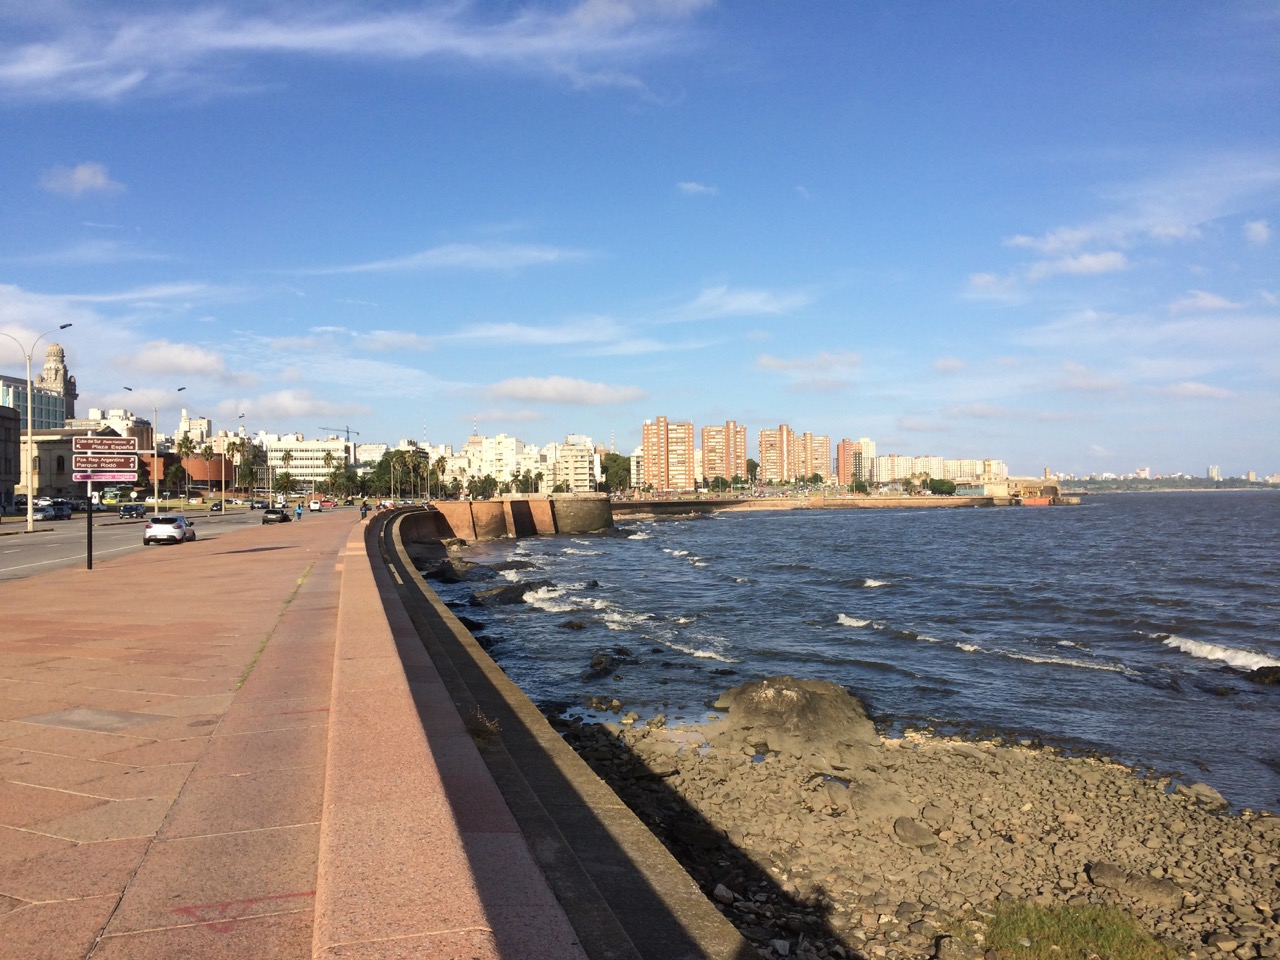 Montevideo is the walking paradise: the total length of the promenade is about 20 km